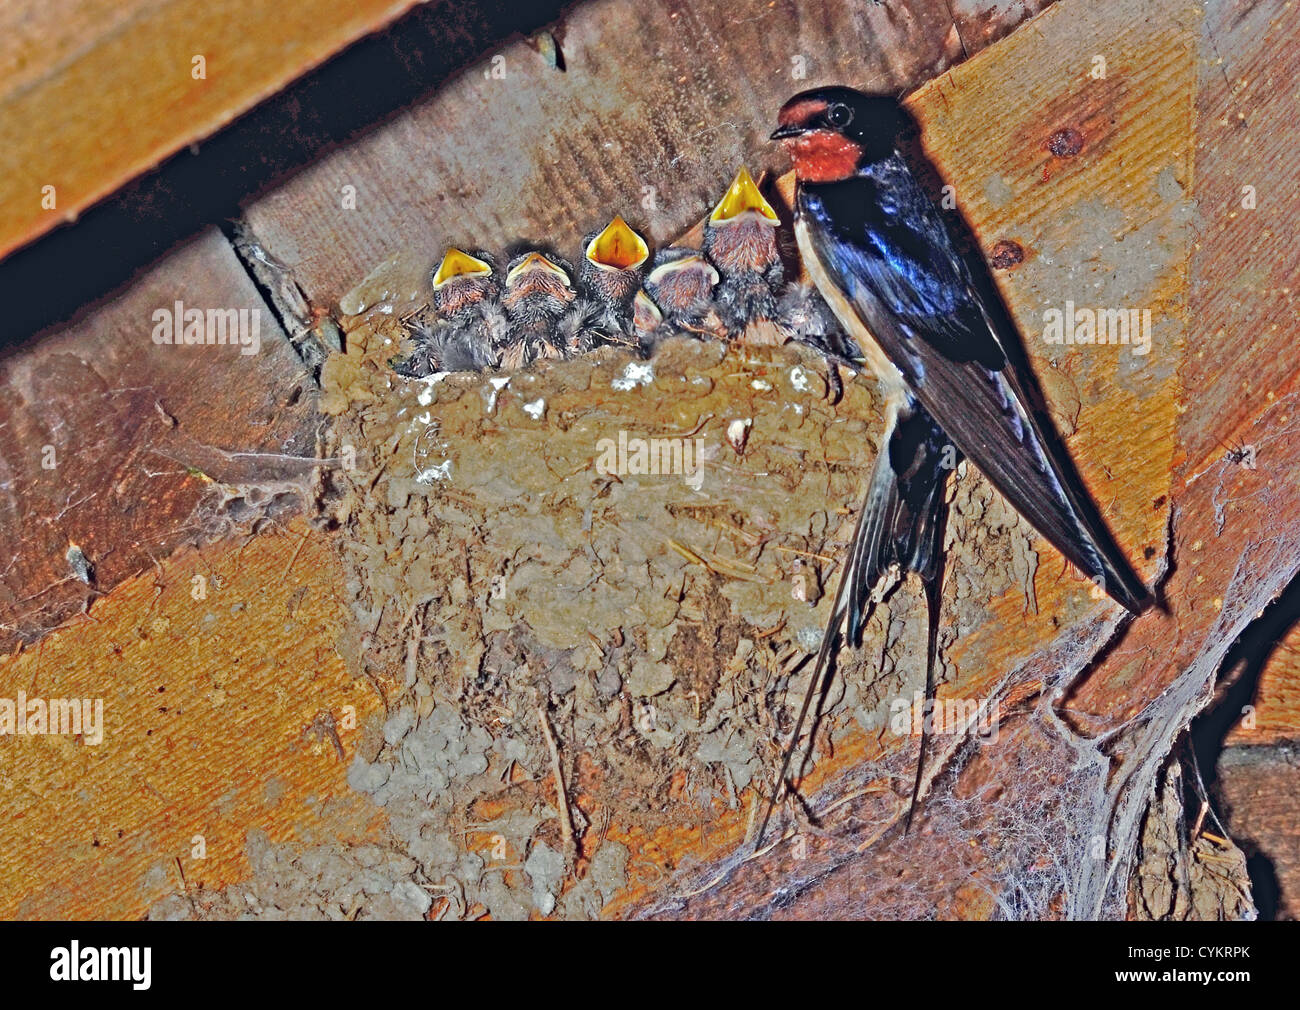 UK Swallow and nest with five hatchlings in roof - Stock Image